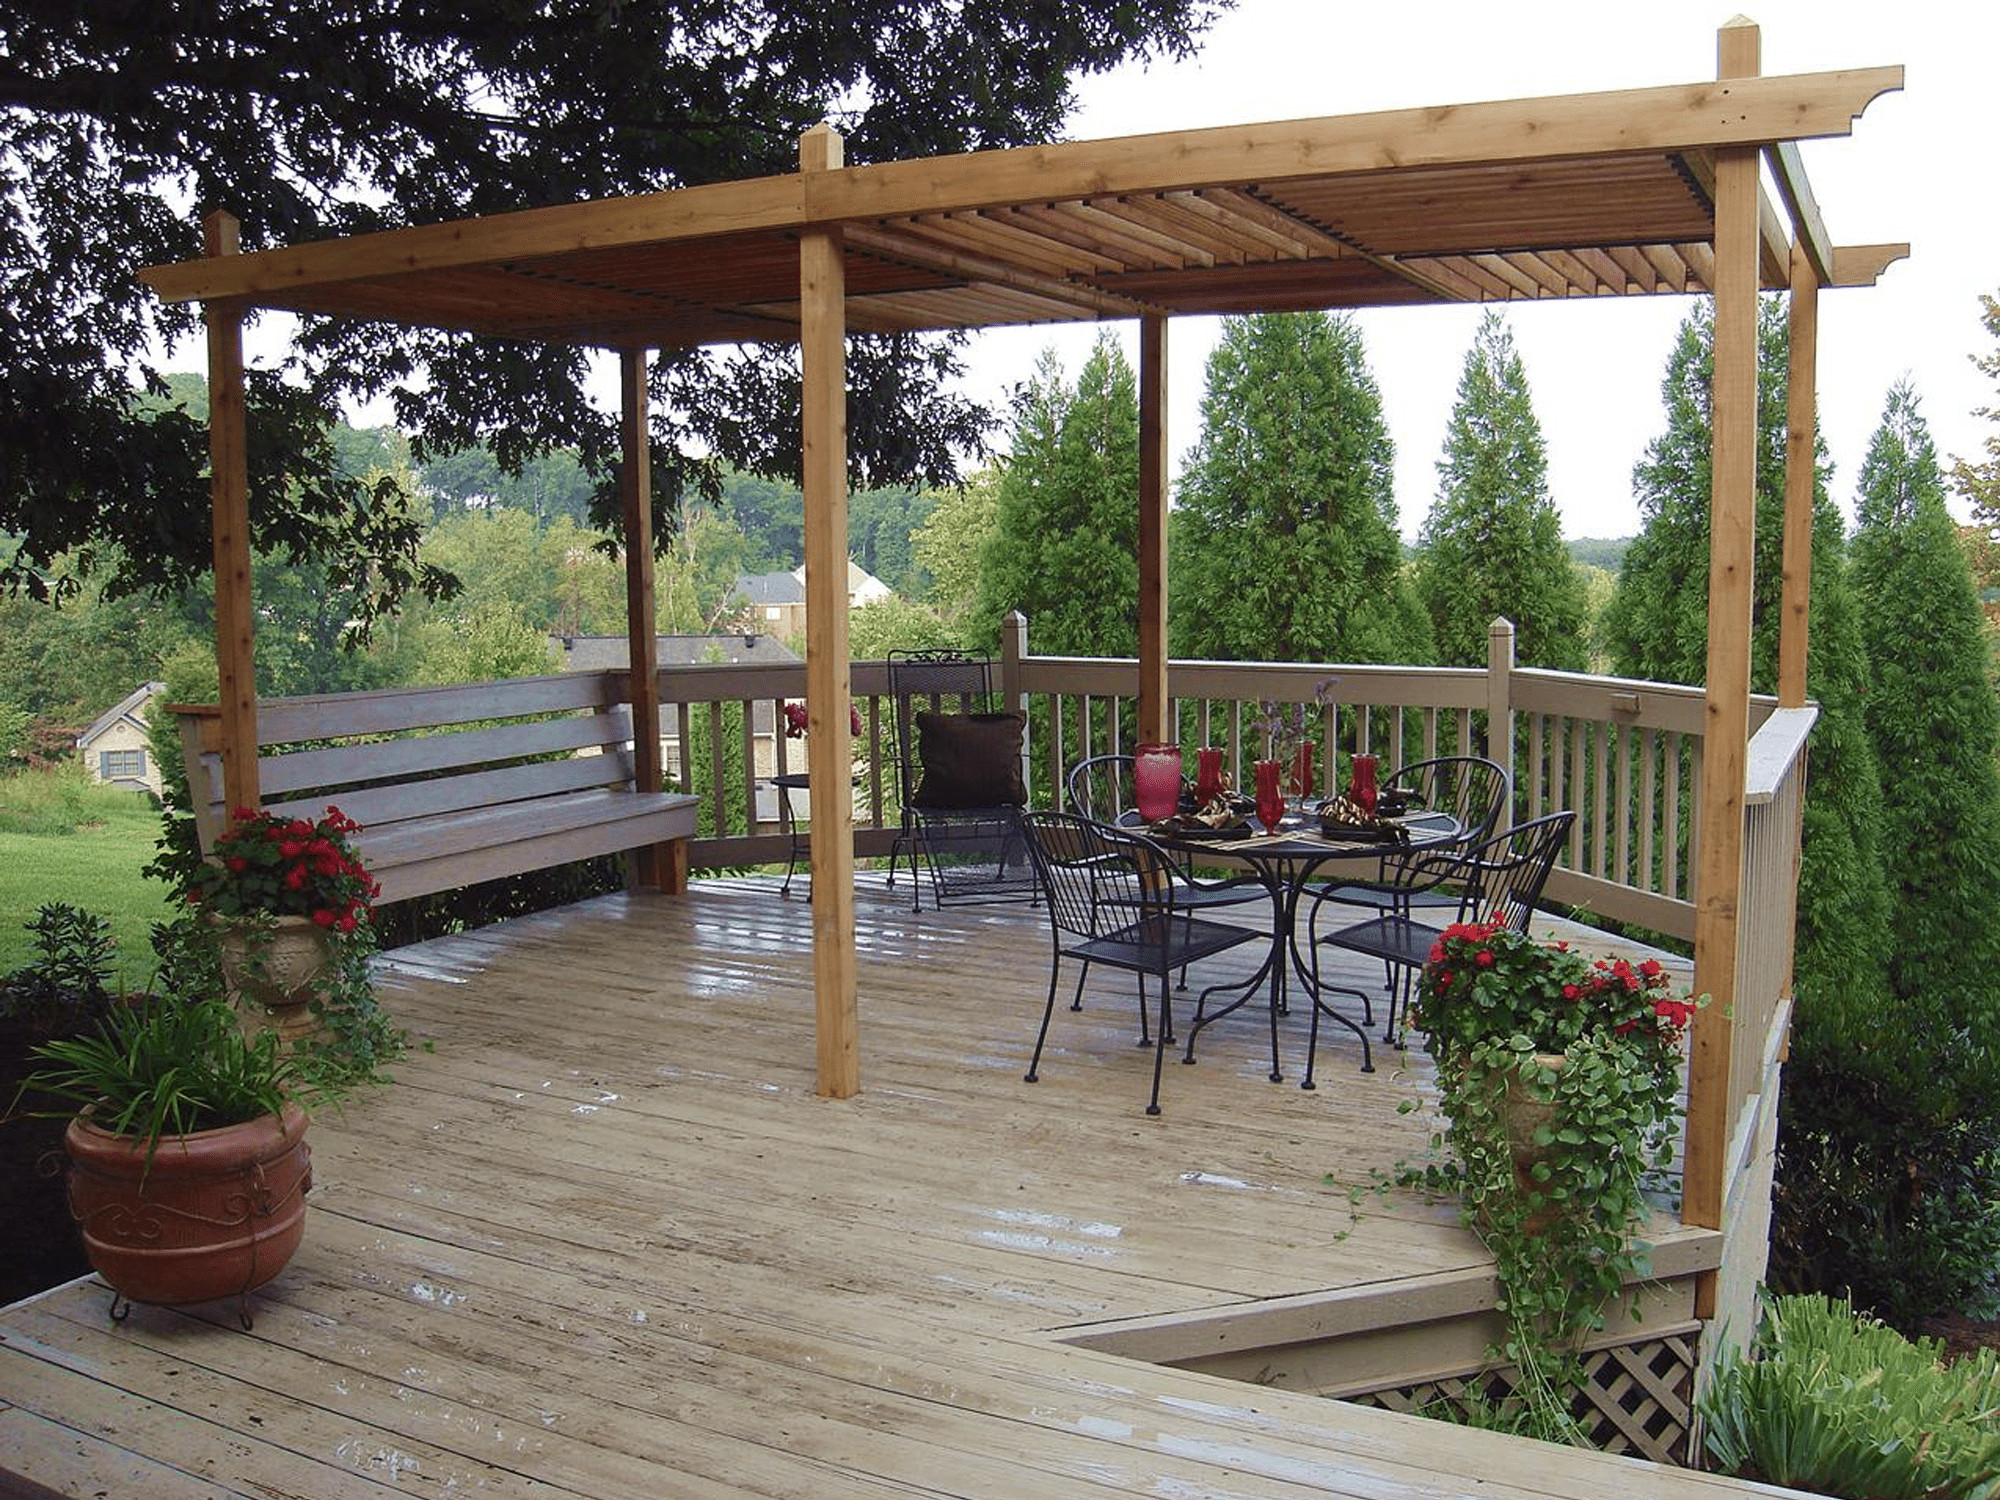 Best ideas about Pergola Plans DIY . Save or Pin 13 Free Pergola Plans You Can DIY Today Now.